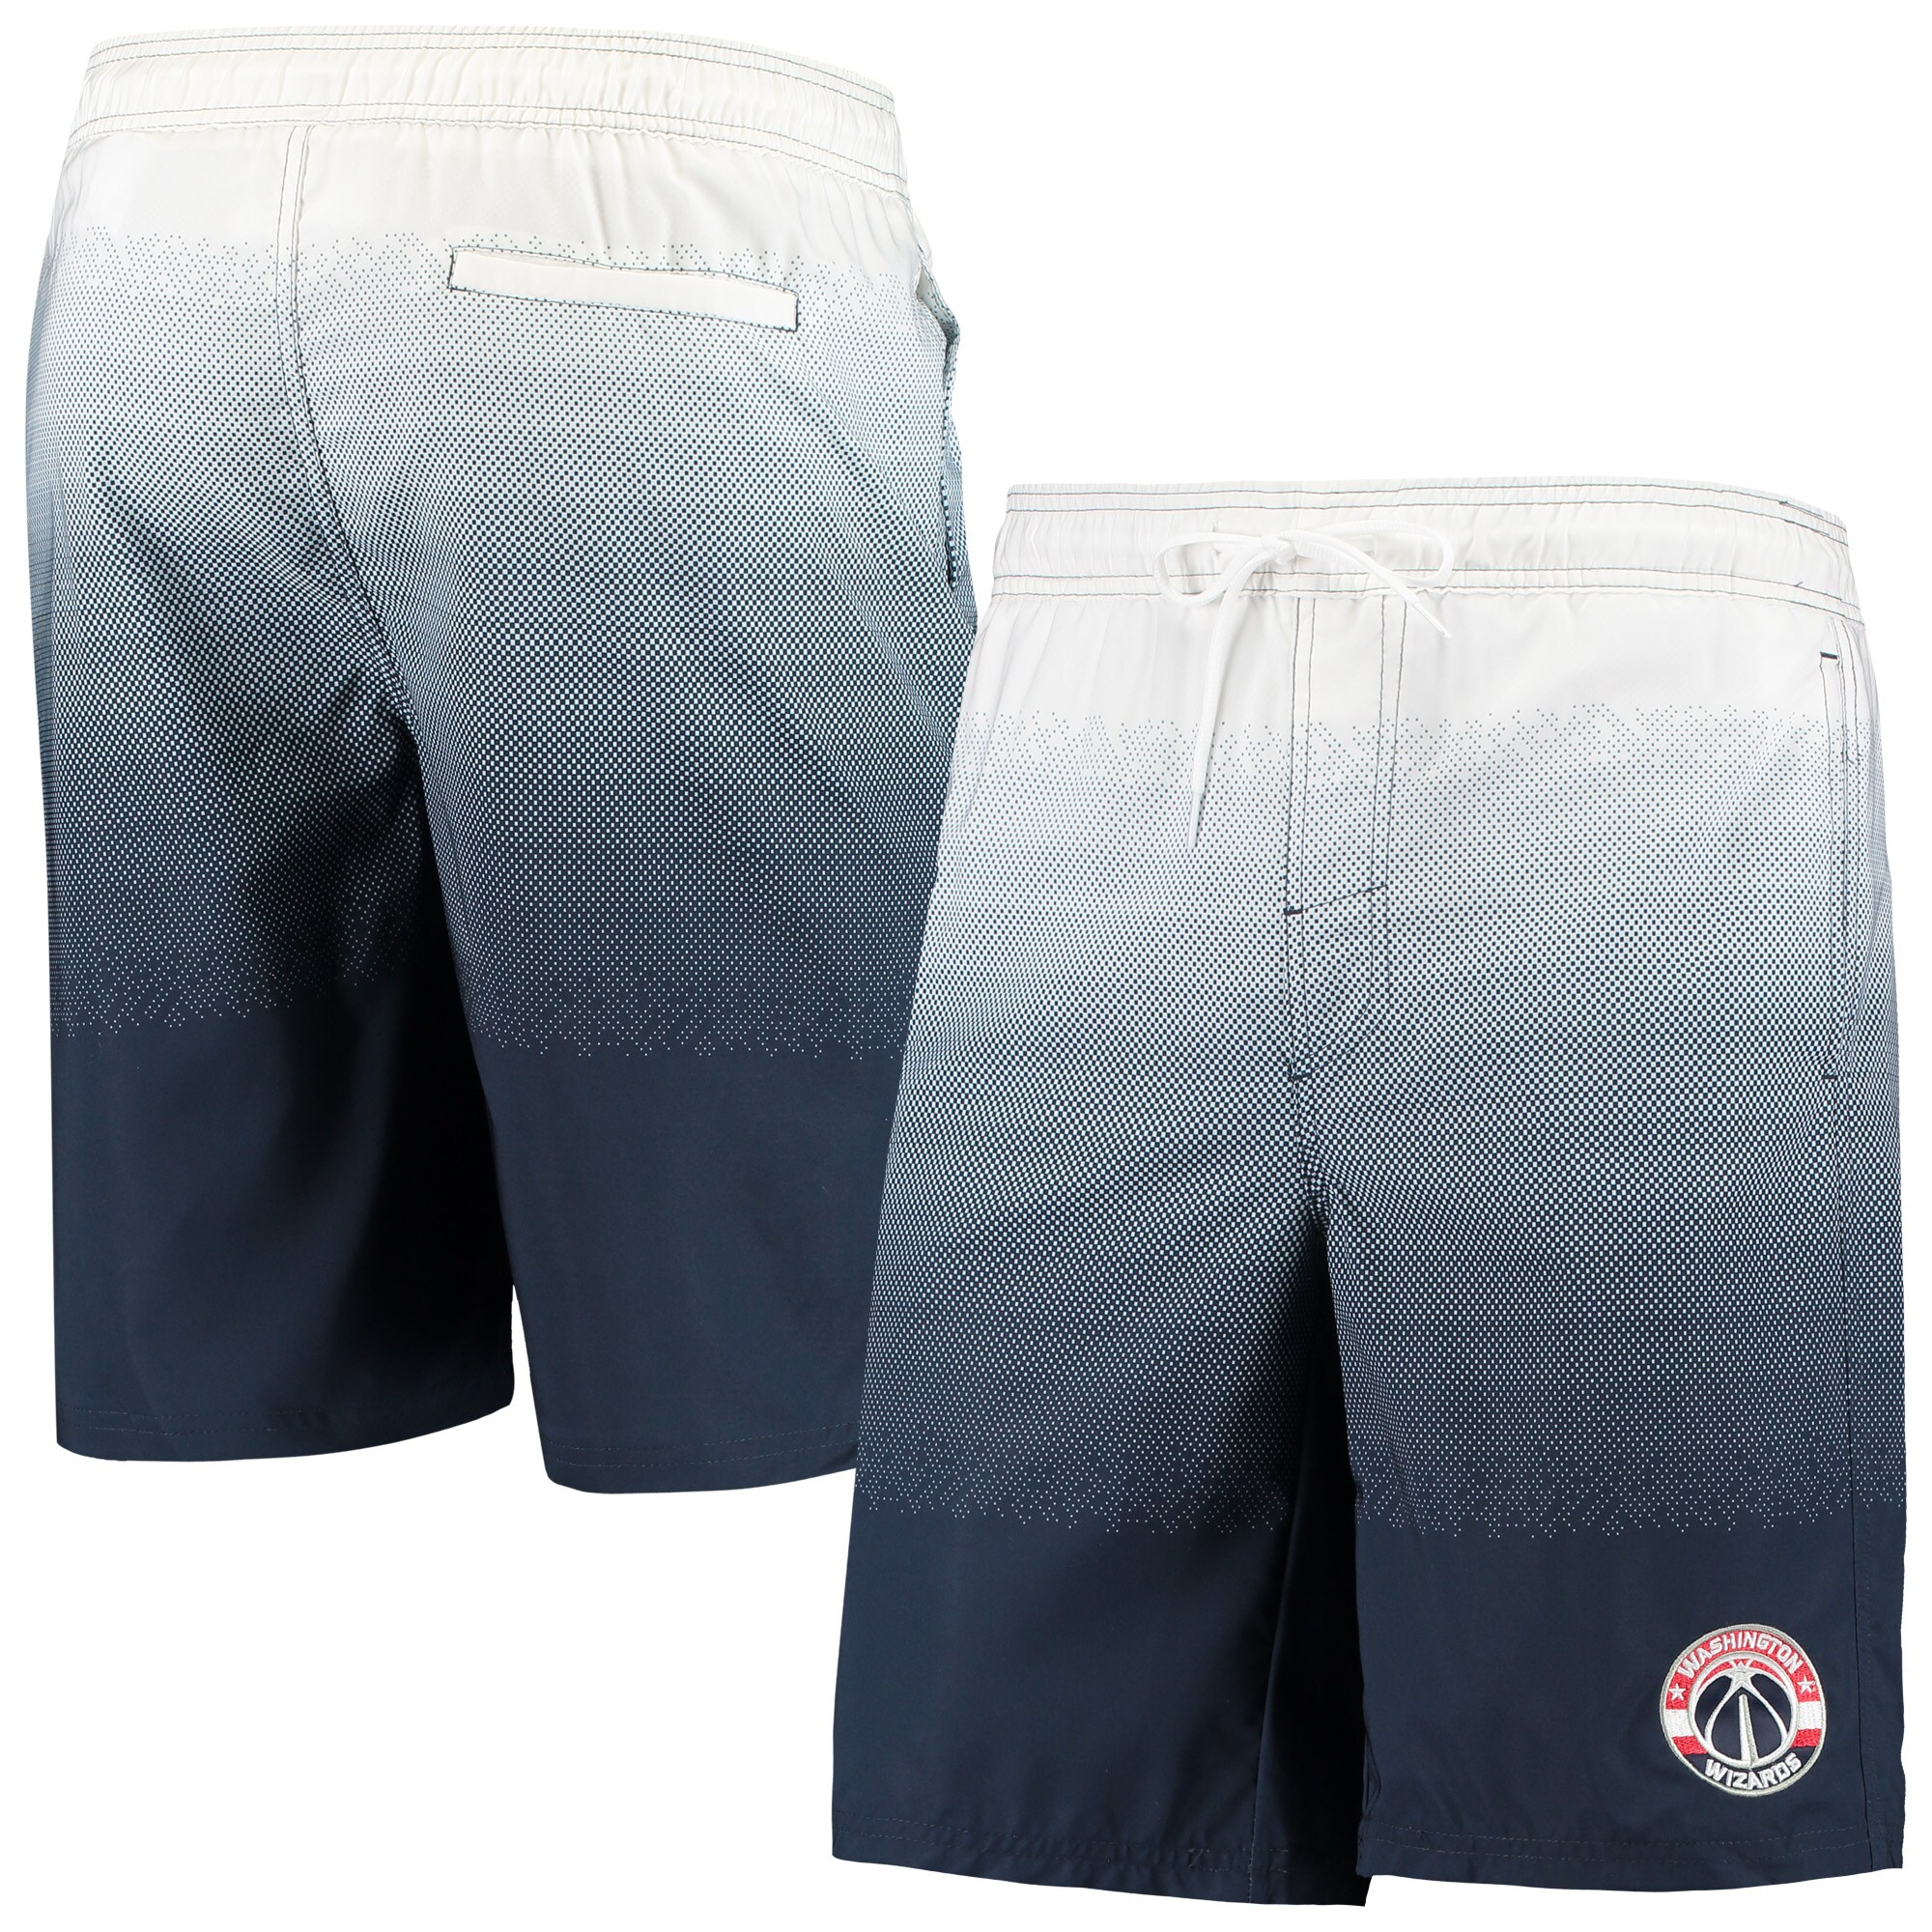 Washington Wizards G-III Sports by Carl Banks Horizon Swim Trunks - Navy